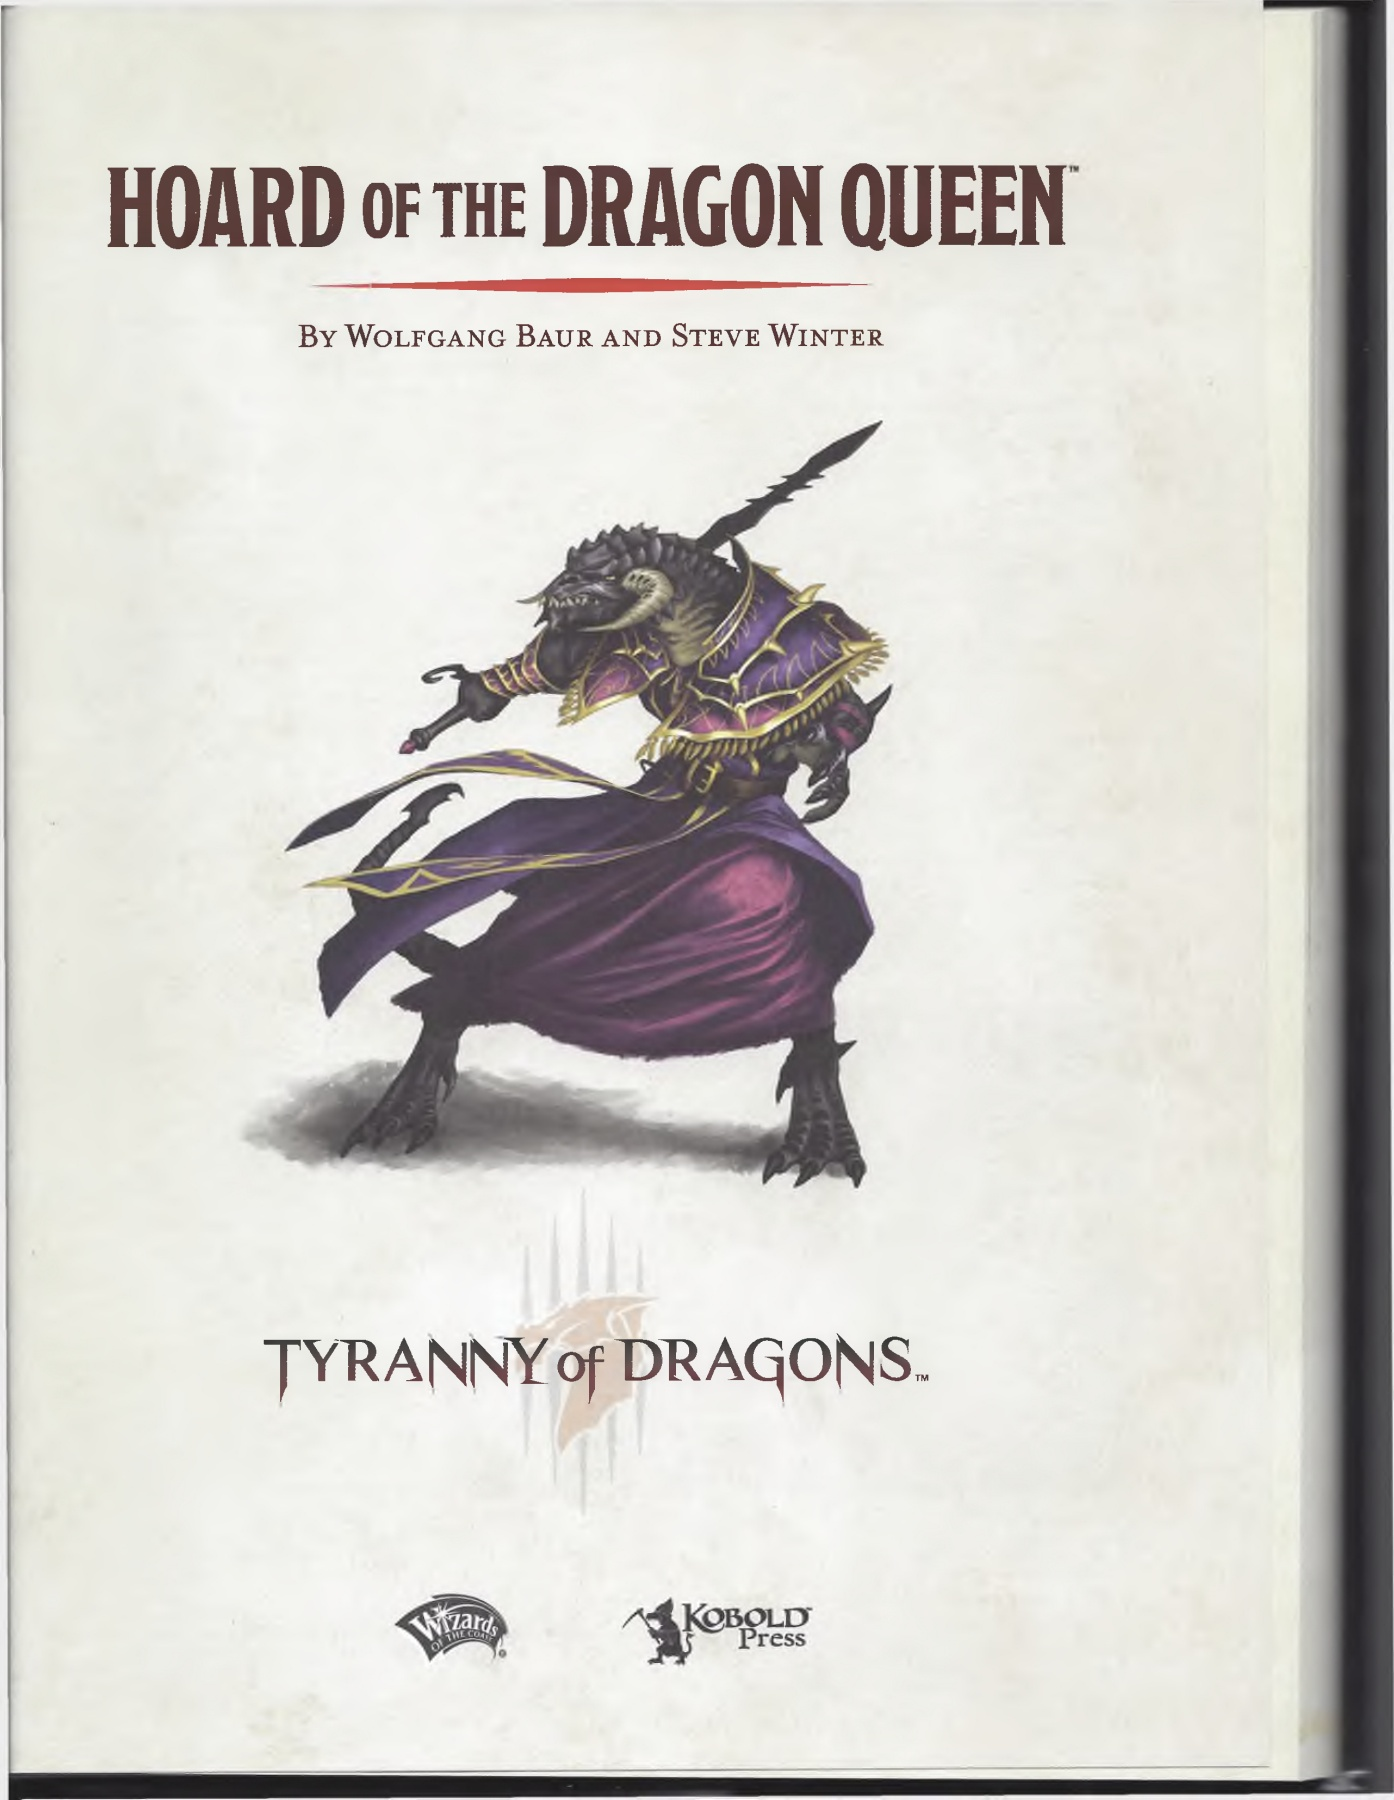 Dnd Hoard Of The Dragon Queen Hoard of the dragon queen adventure (dungeons dragons (idw hardcover)) for. anyflip